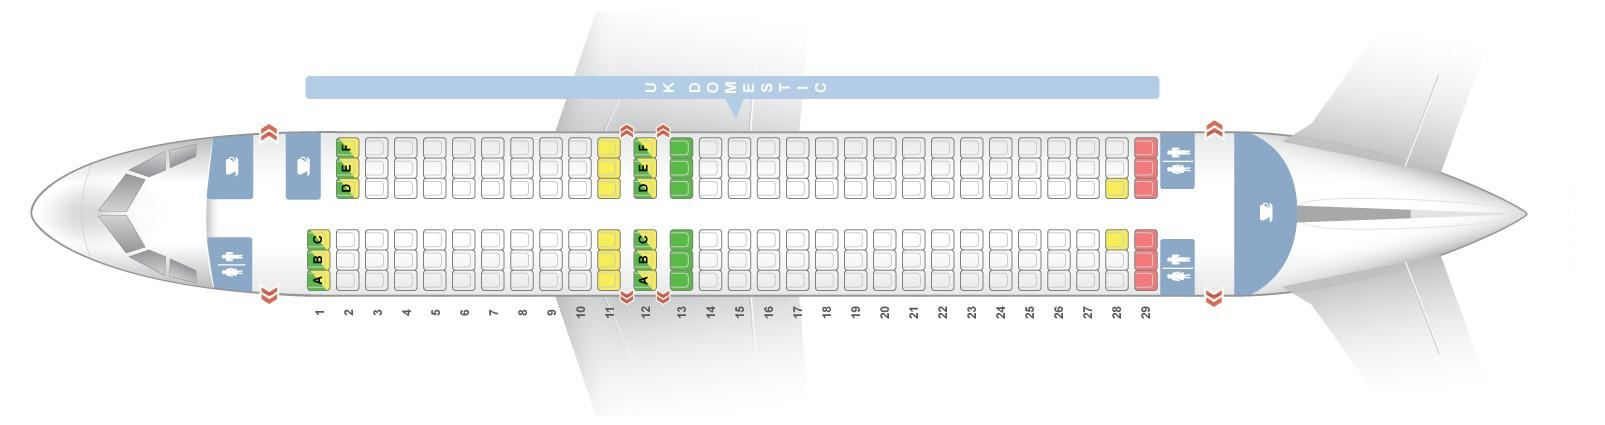 Seat Map And Seating Chart Airbus A320 200 Uk Domestic V2 British Airways